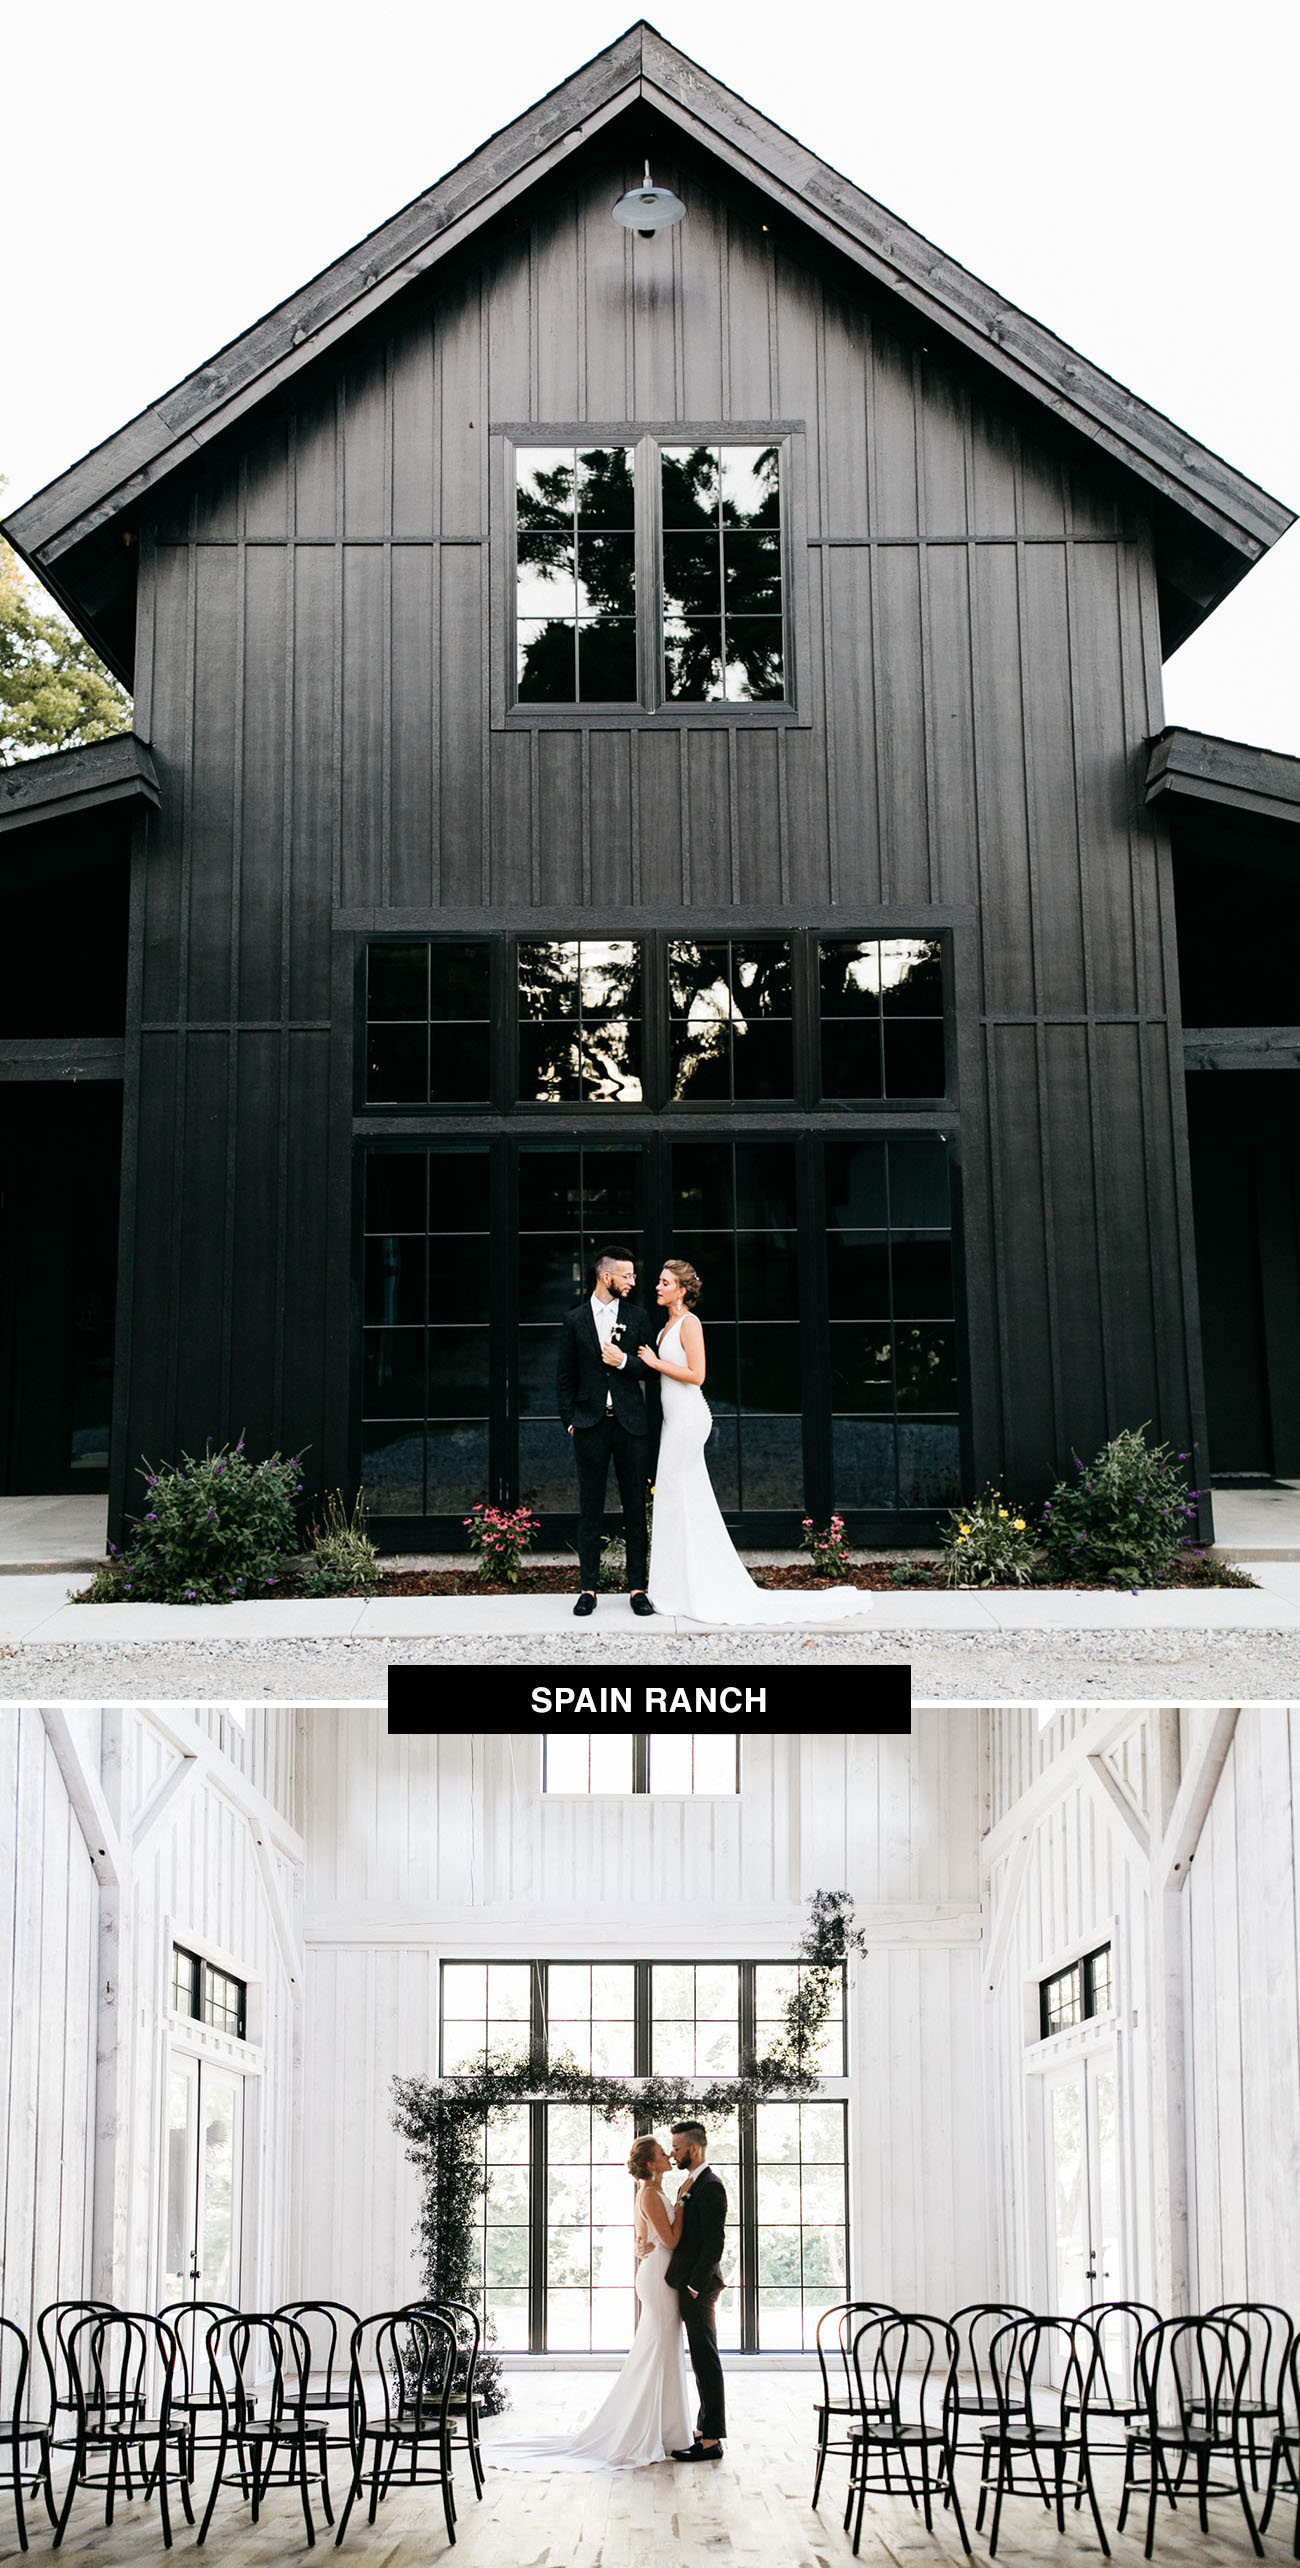 Spain Ranch wedding venue in Oklahoma gives you the option of getting married in a black barn or a white barn